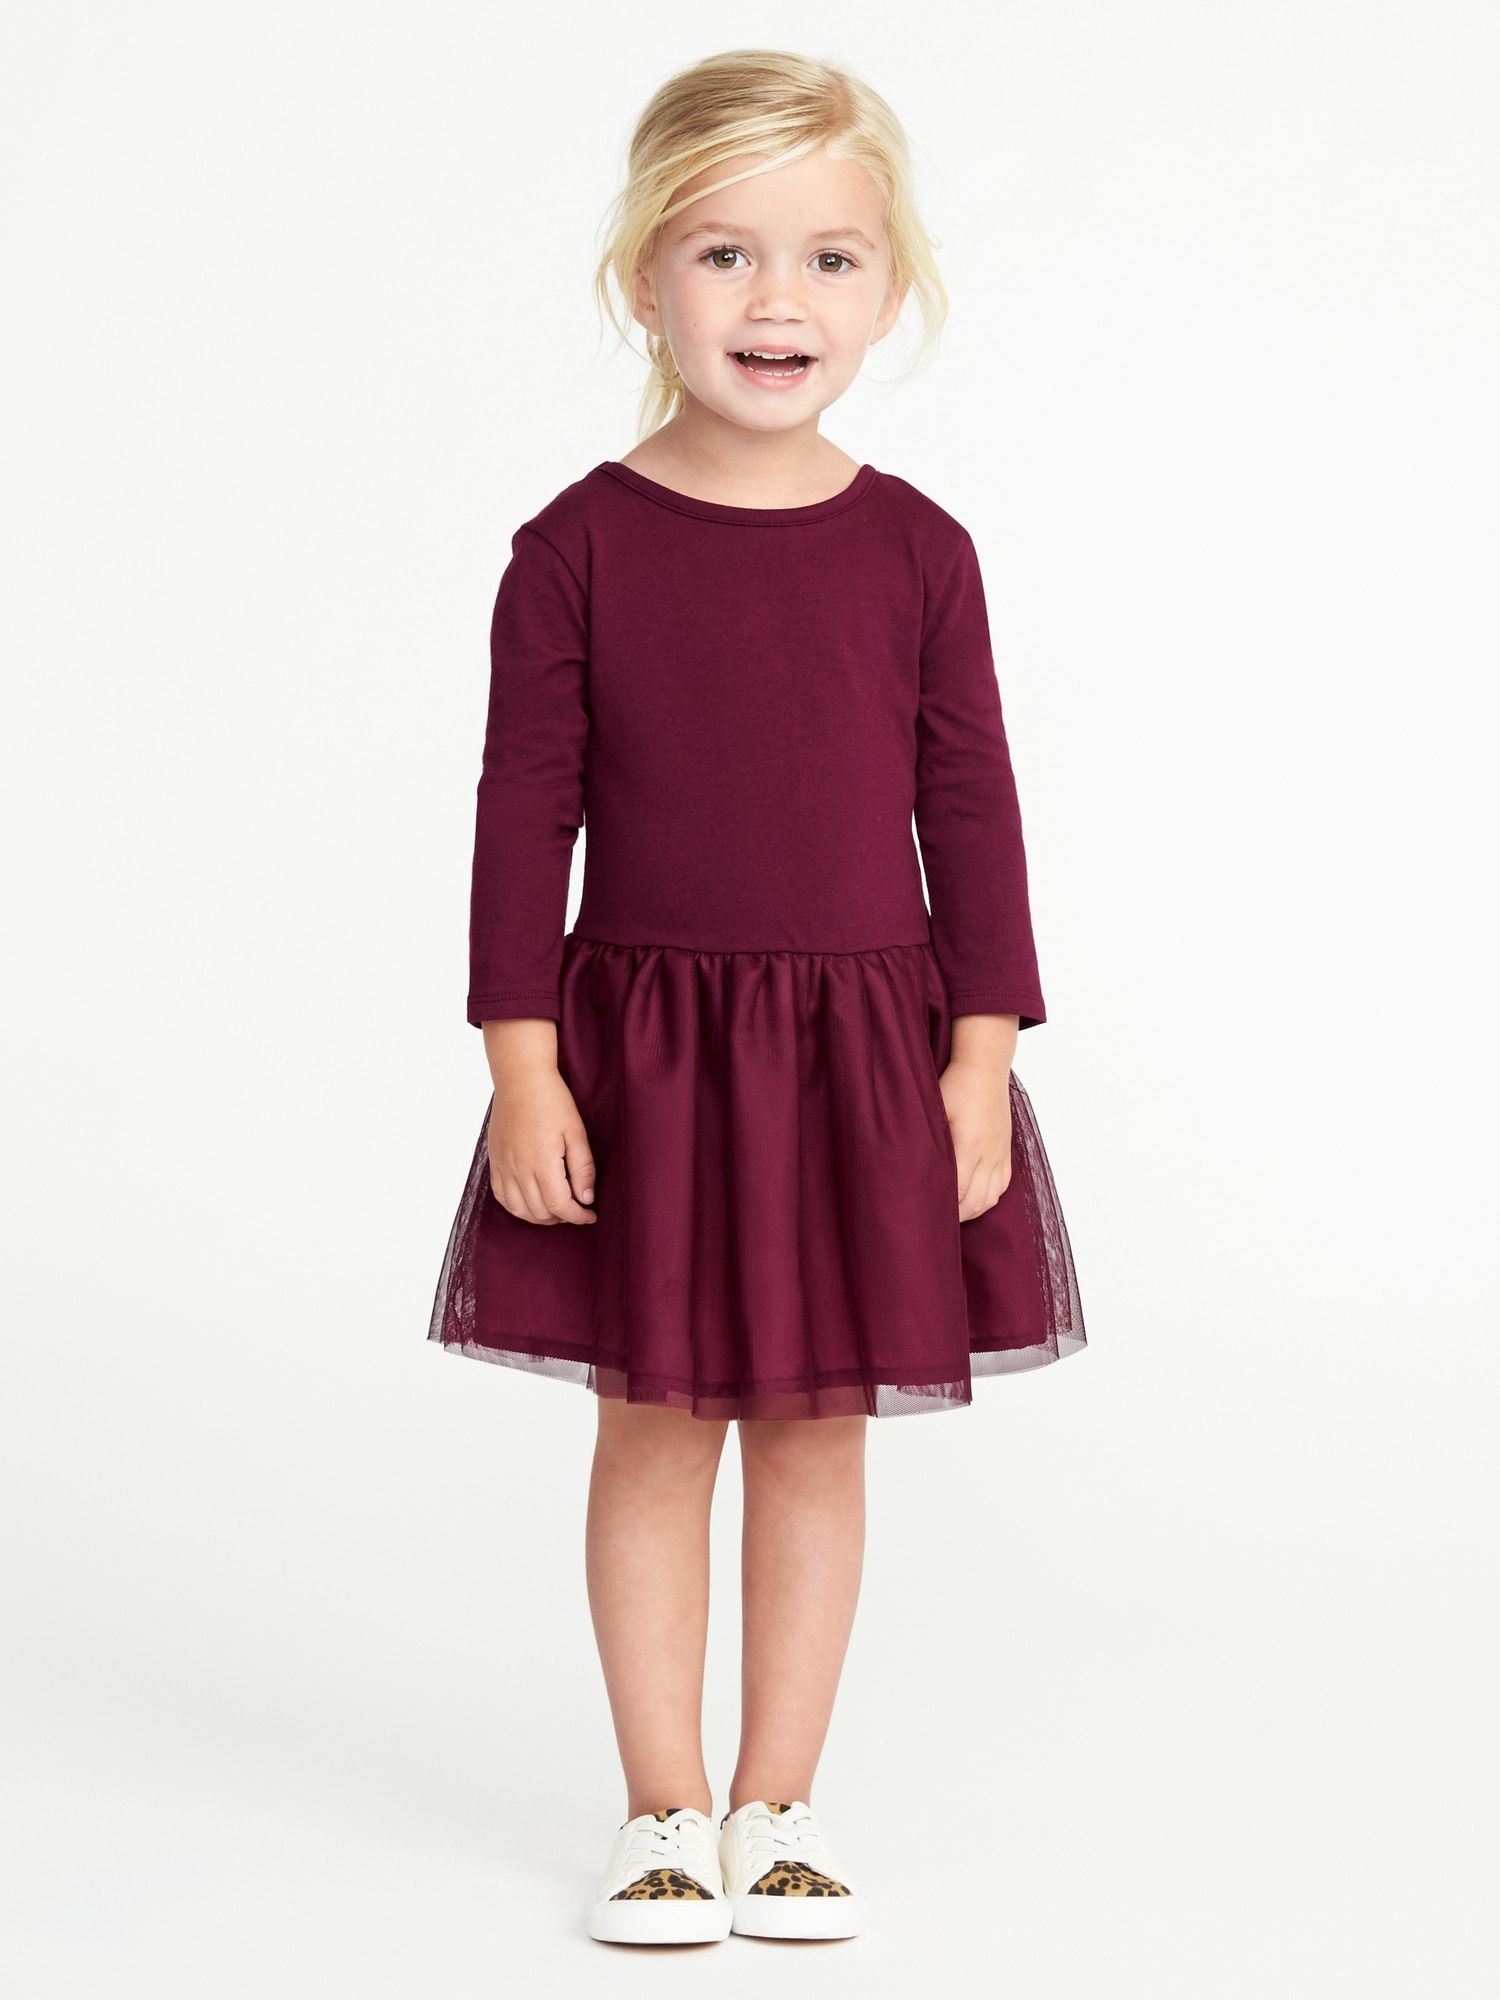 Old Navy Scoop Back Tutu Dress for Toddler Girls in Wine